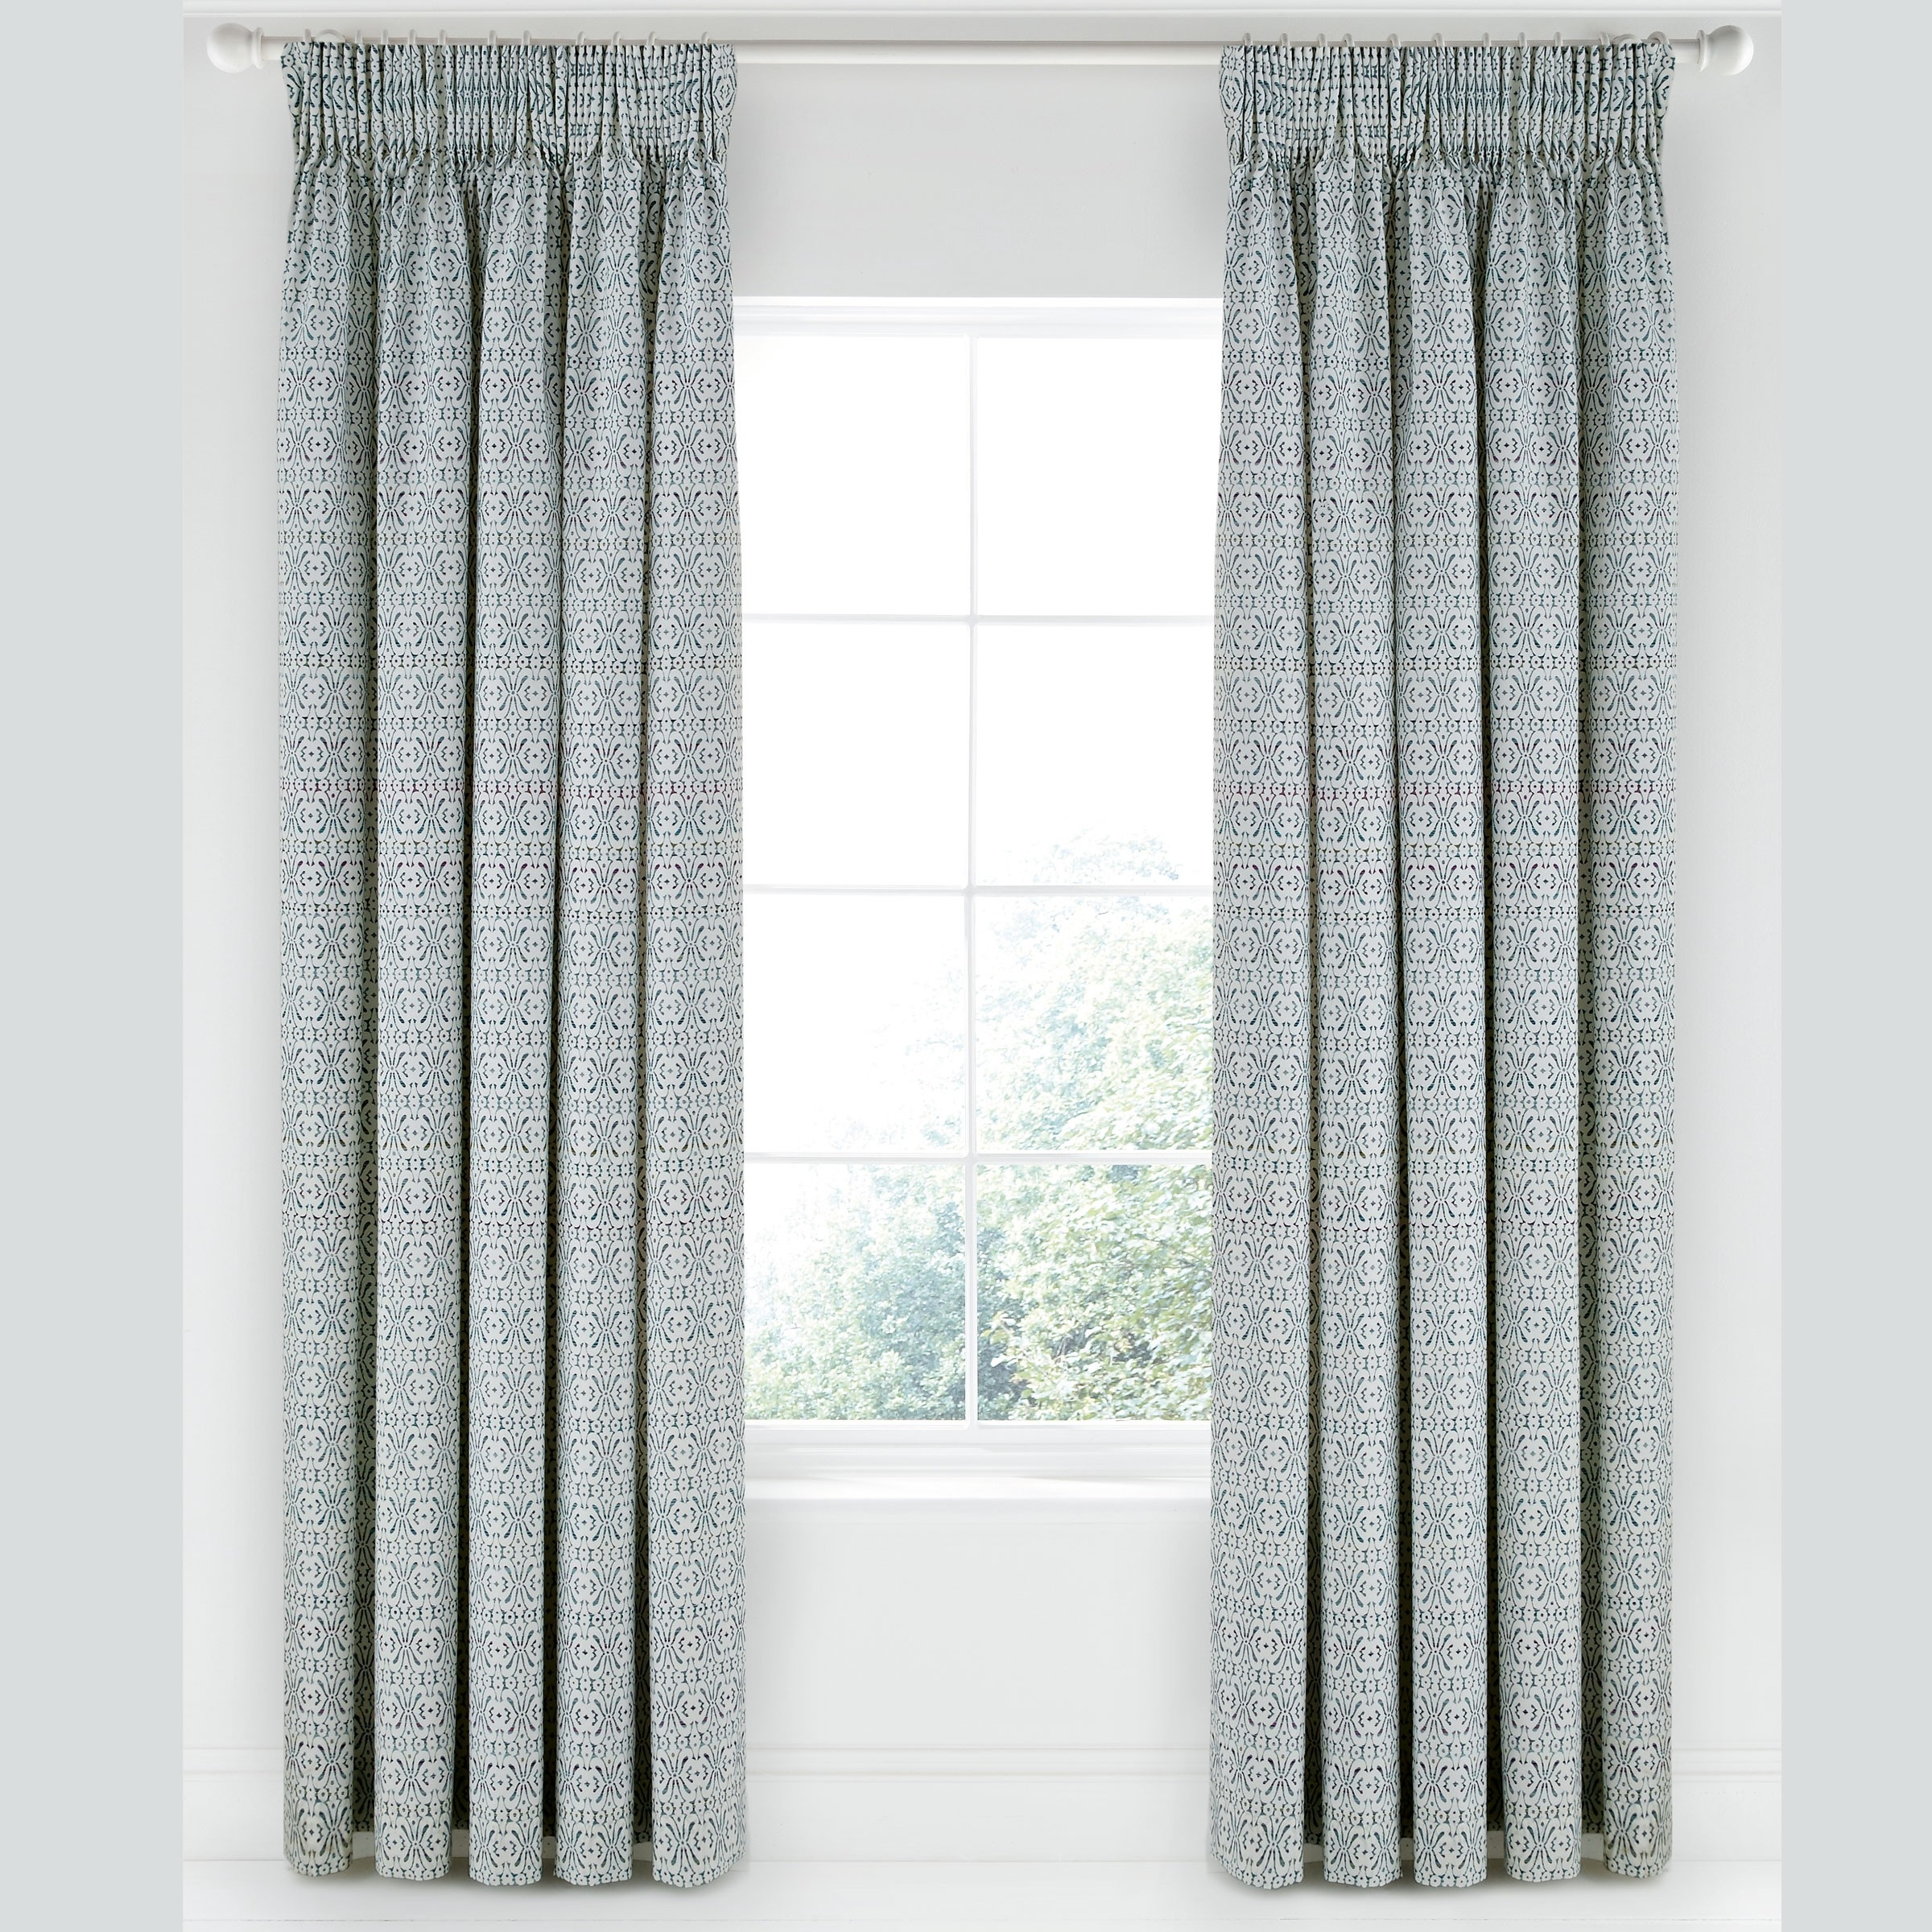 Bedeck 1951 Daya Lined Curtains 66 X 72 Tape Top Monsoon At Inside Monsoon Curtains (View 7 of 15)